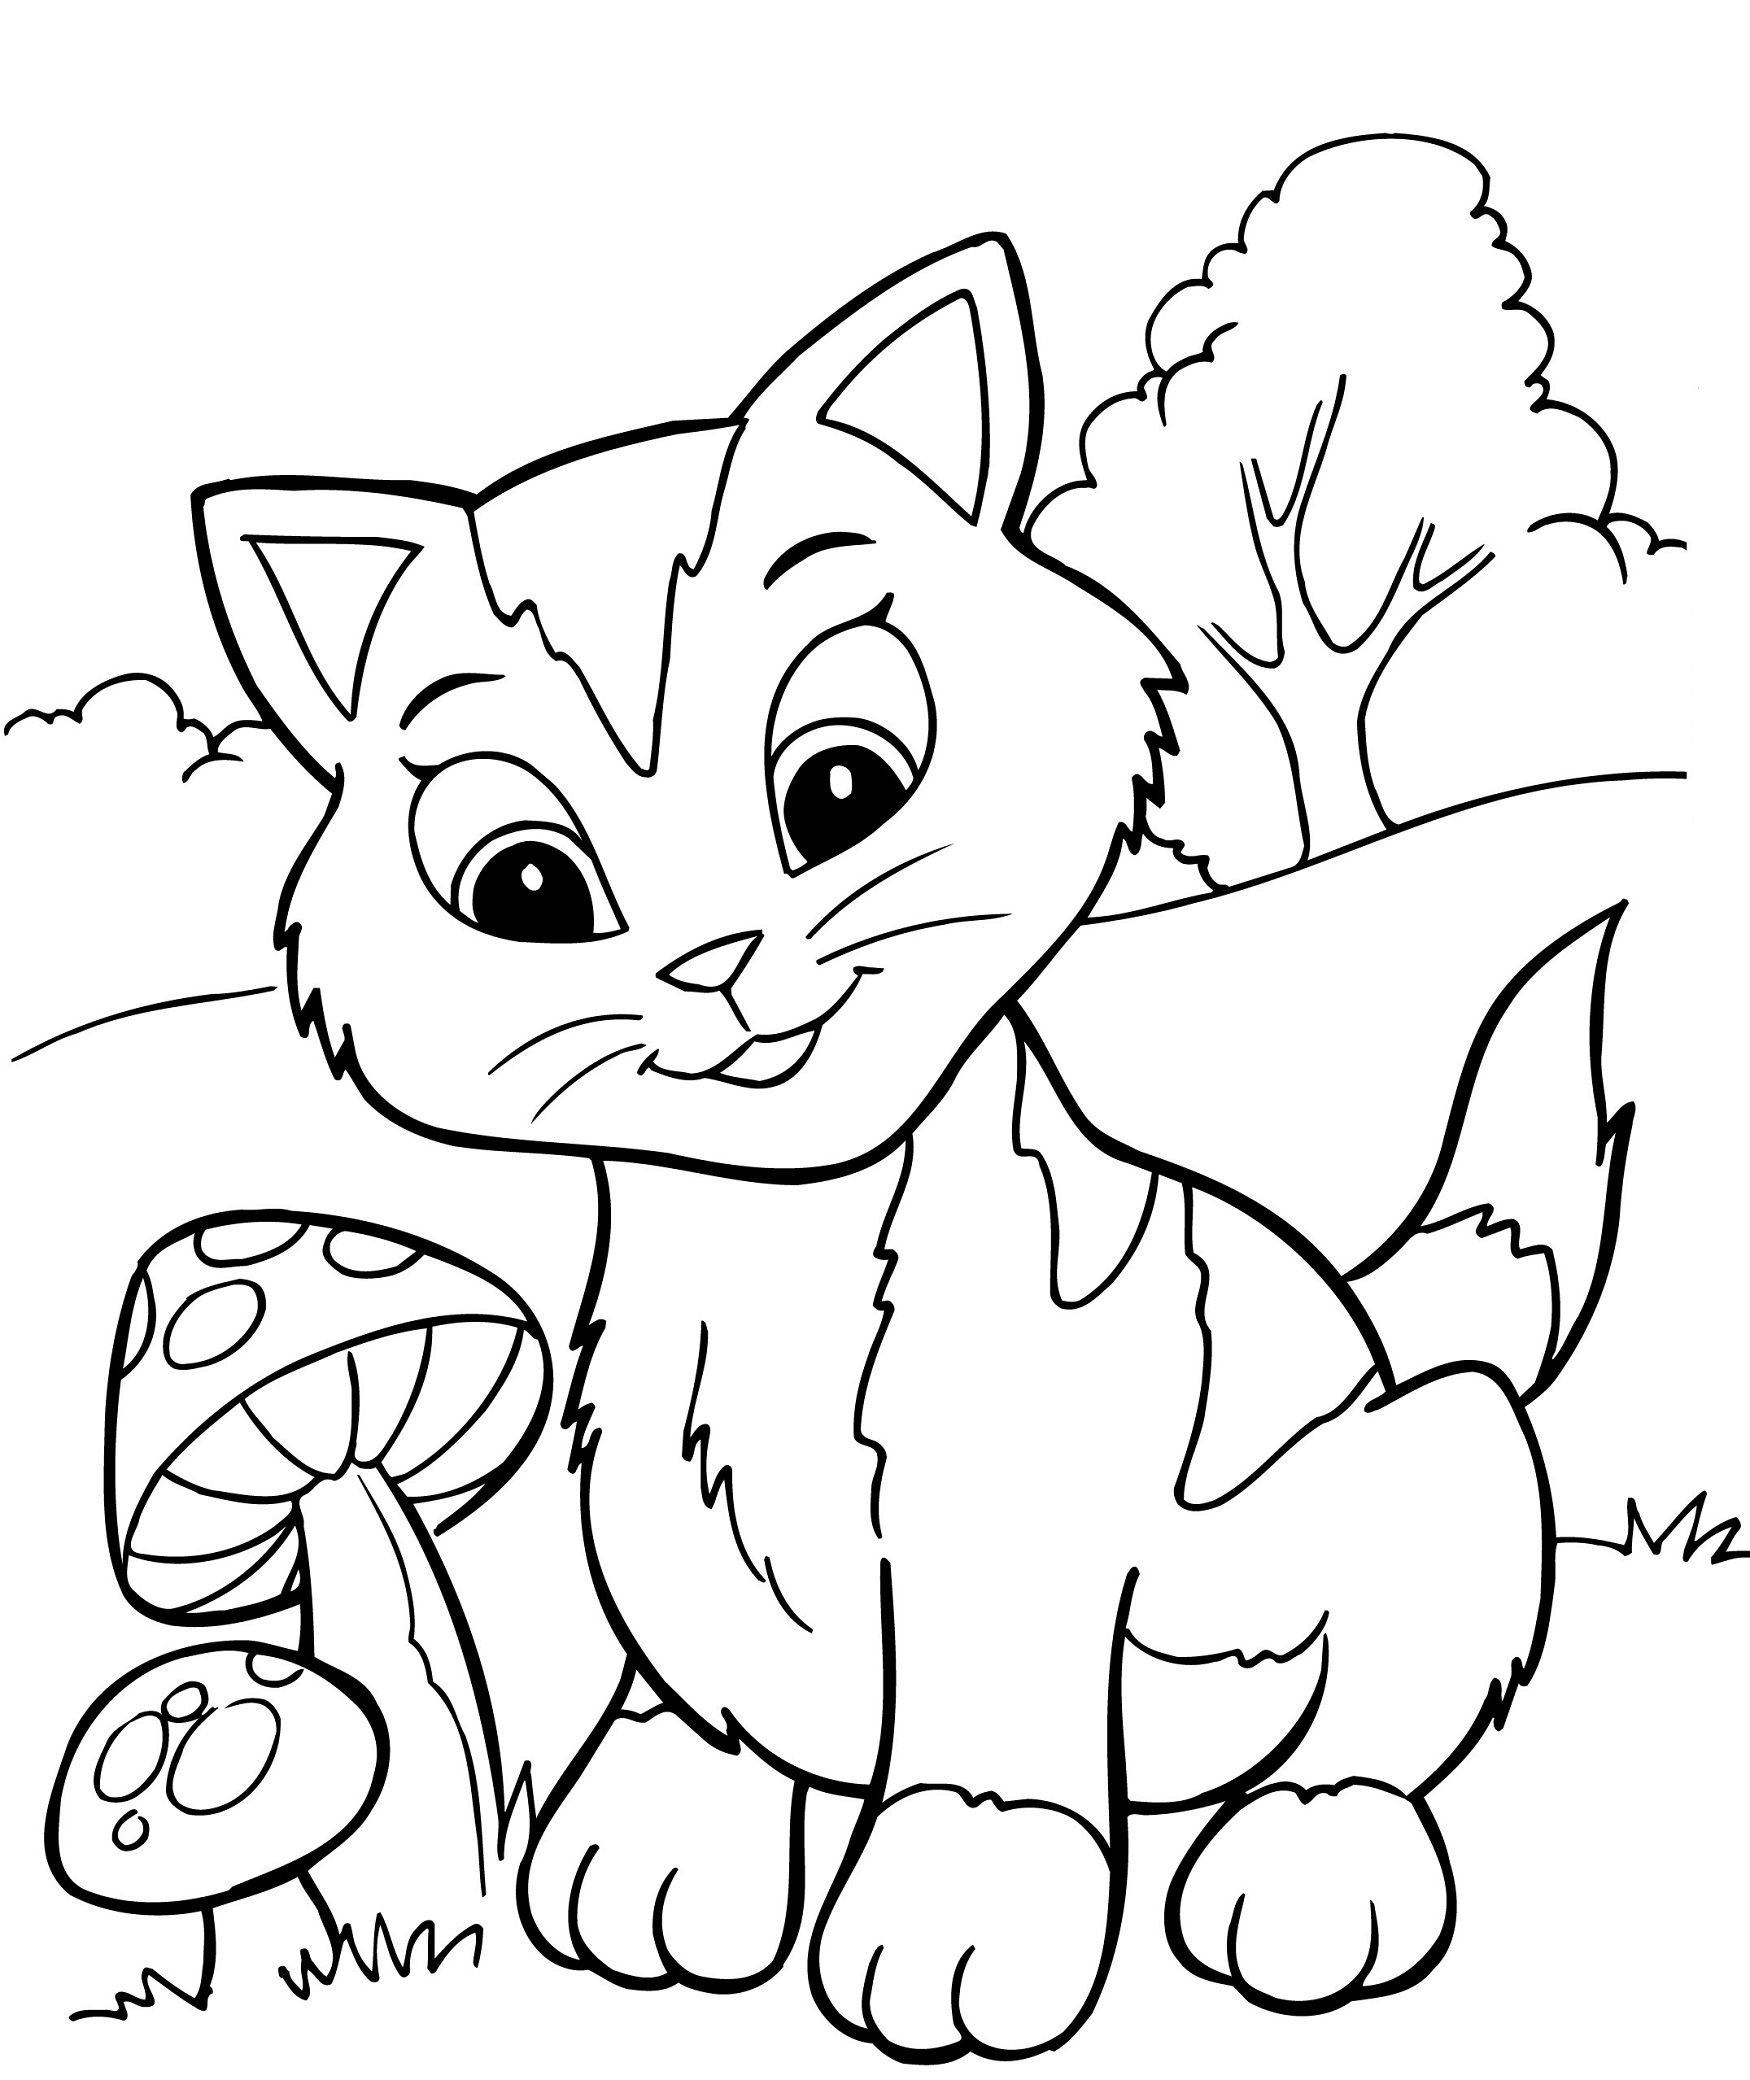 Pretty Image of Kittens Coloring Pages